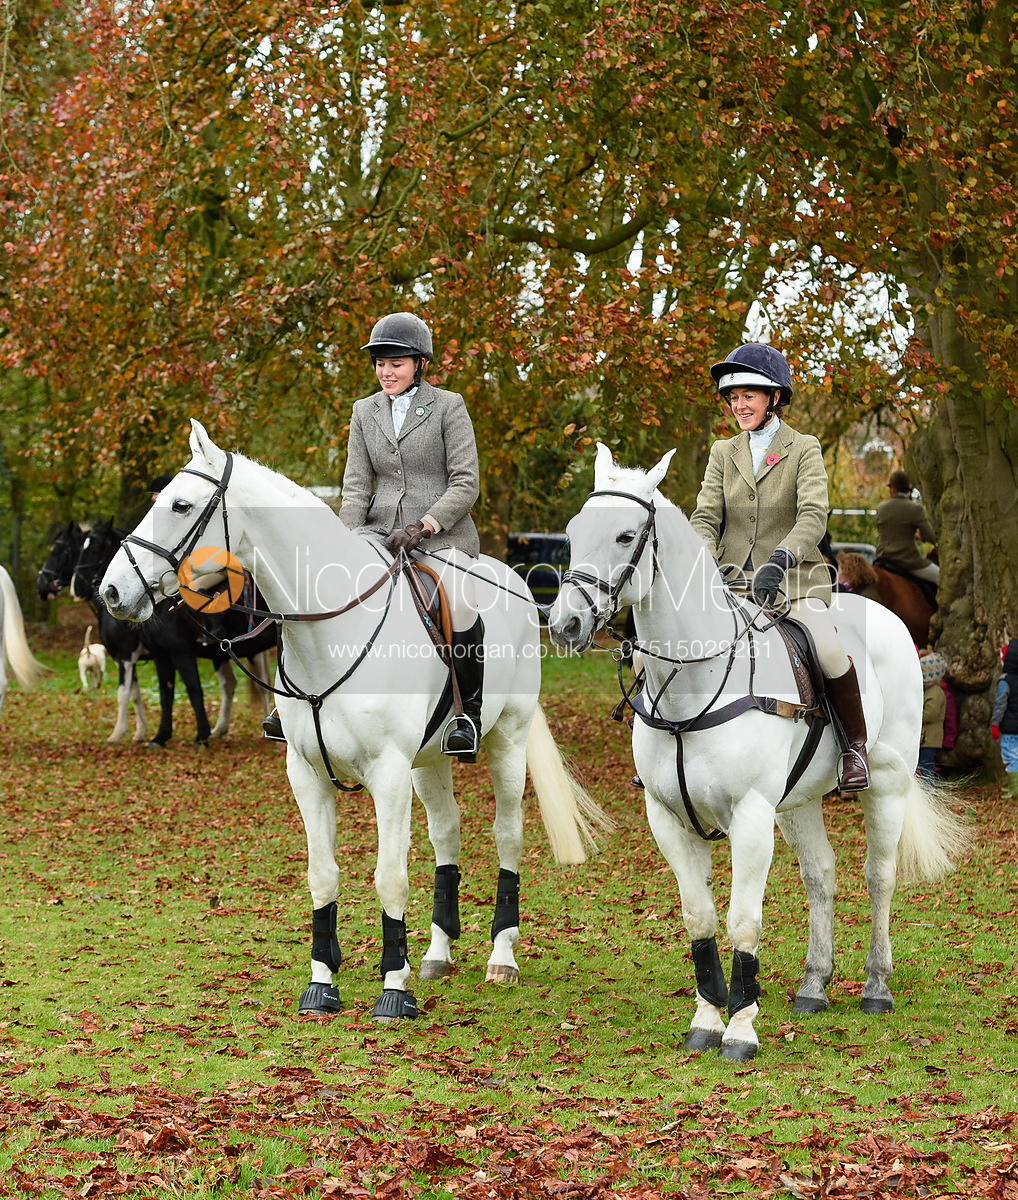 Rose Weatherby, Frankie Wyatt at the meet. The Cottesmore Hunt at Somerby